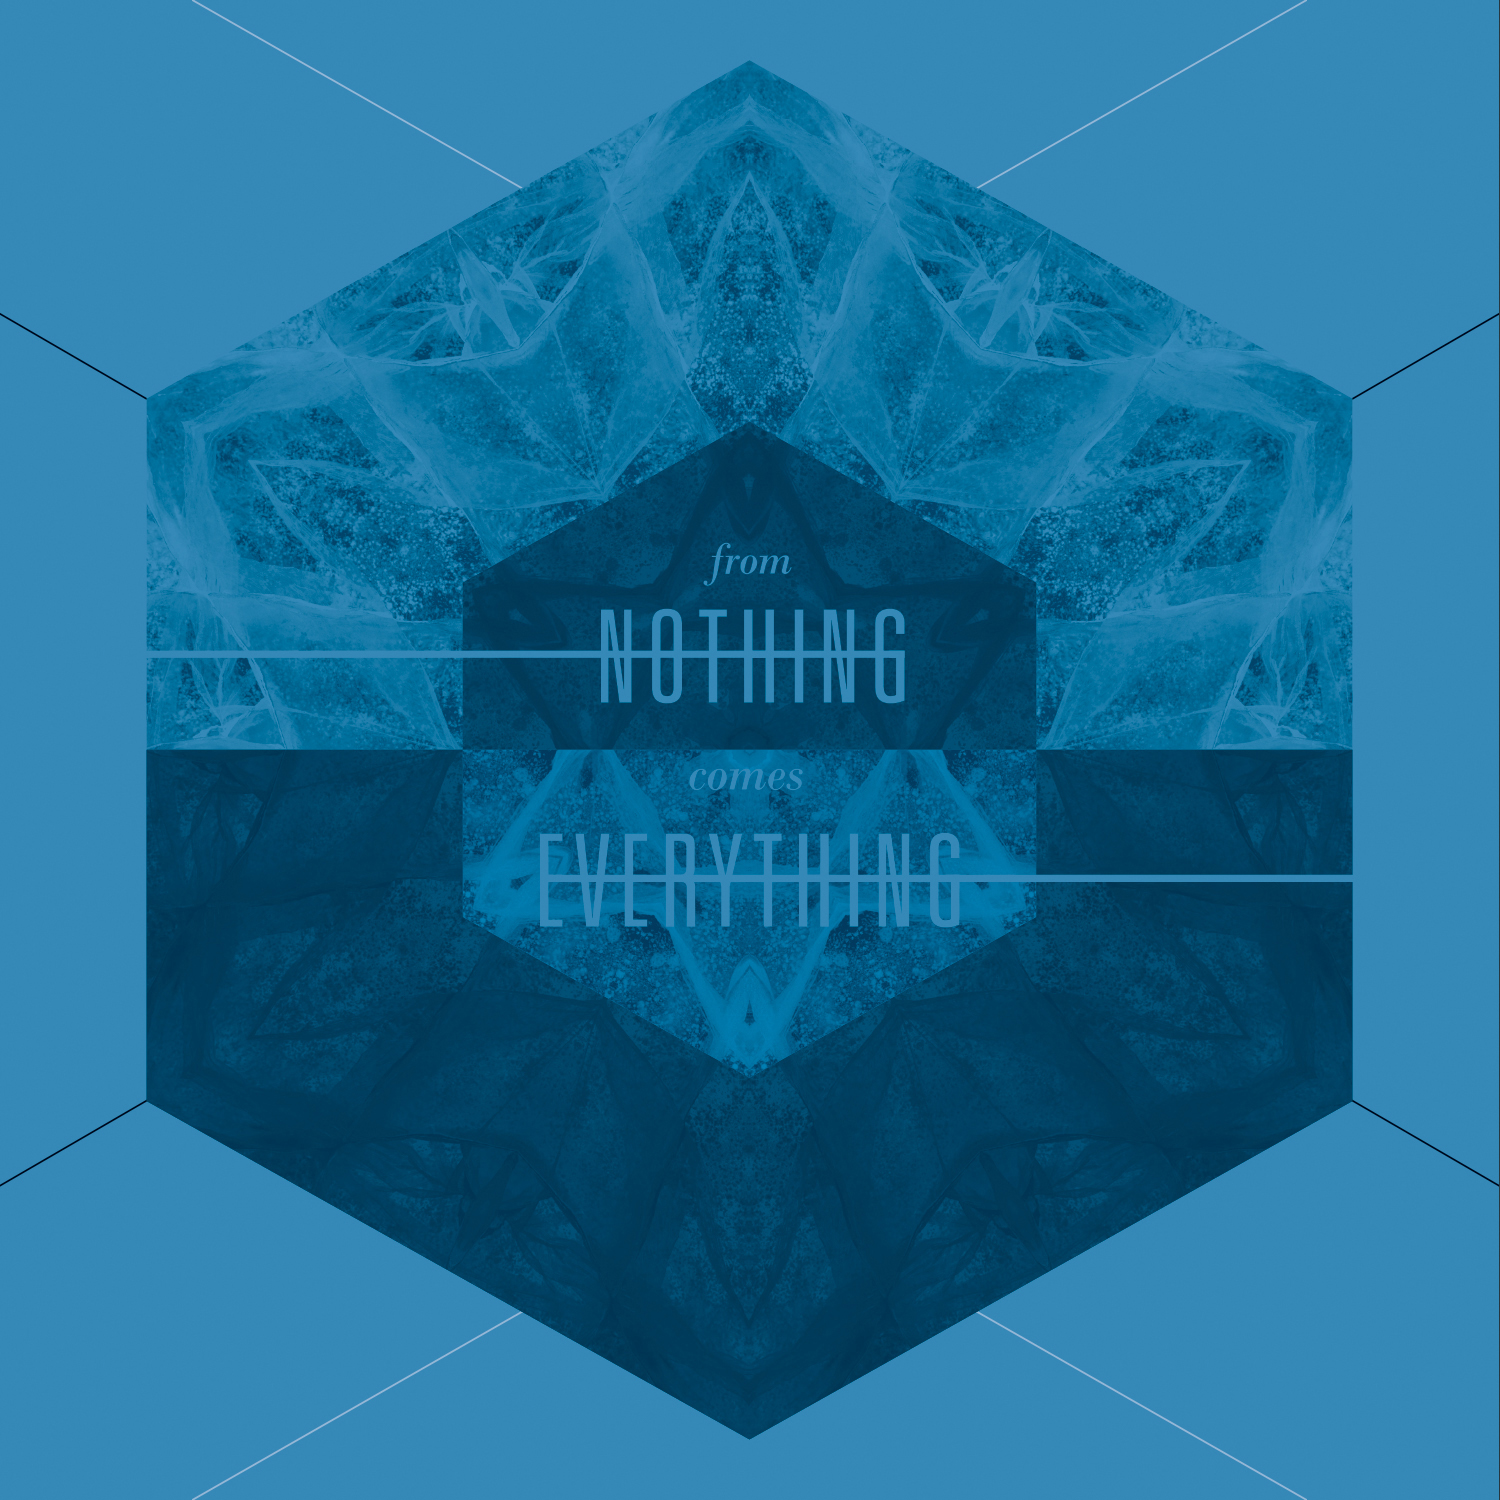 torpor from nothing comes everything